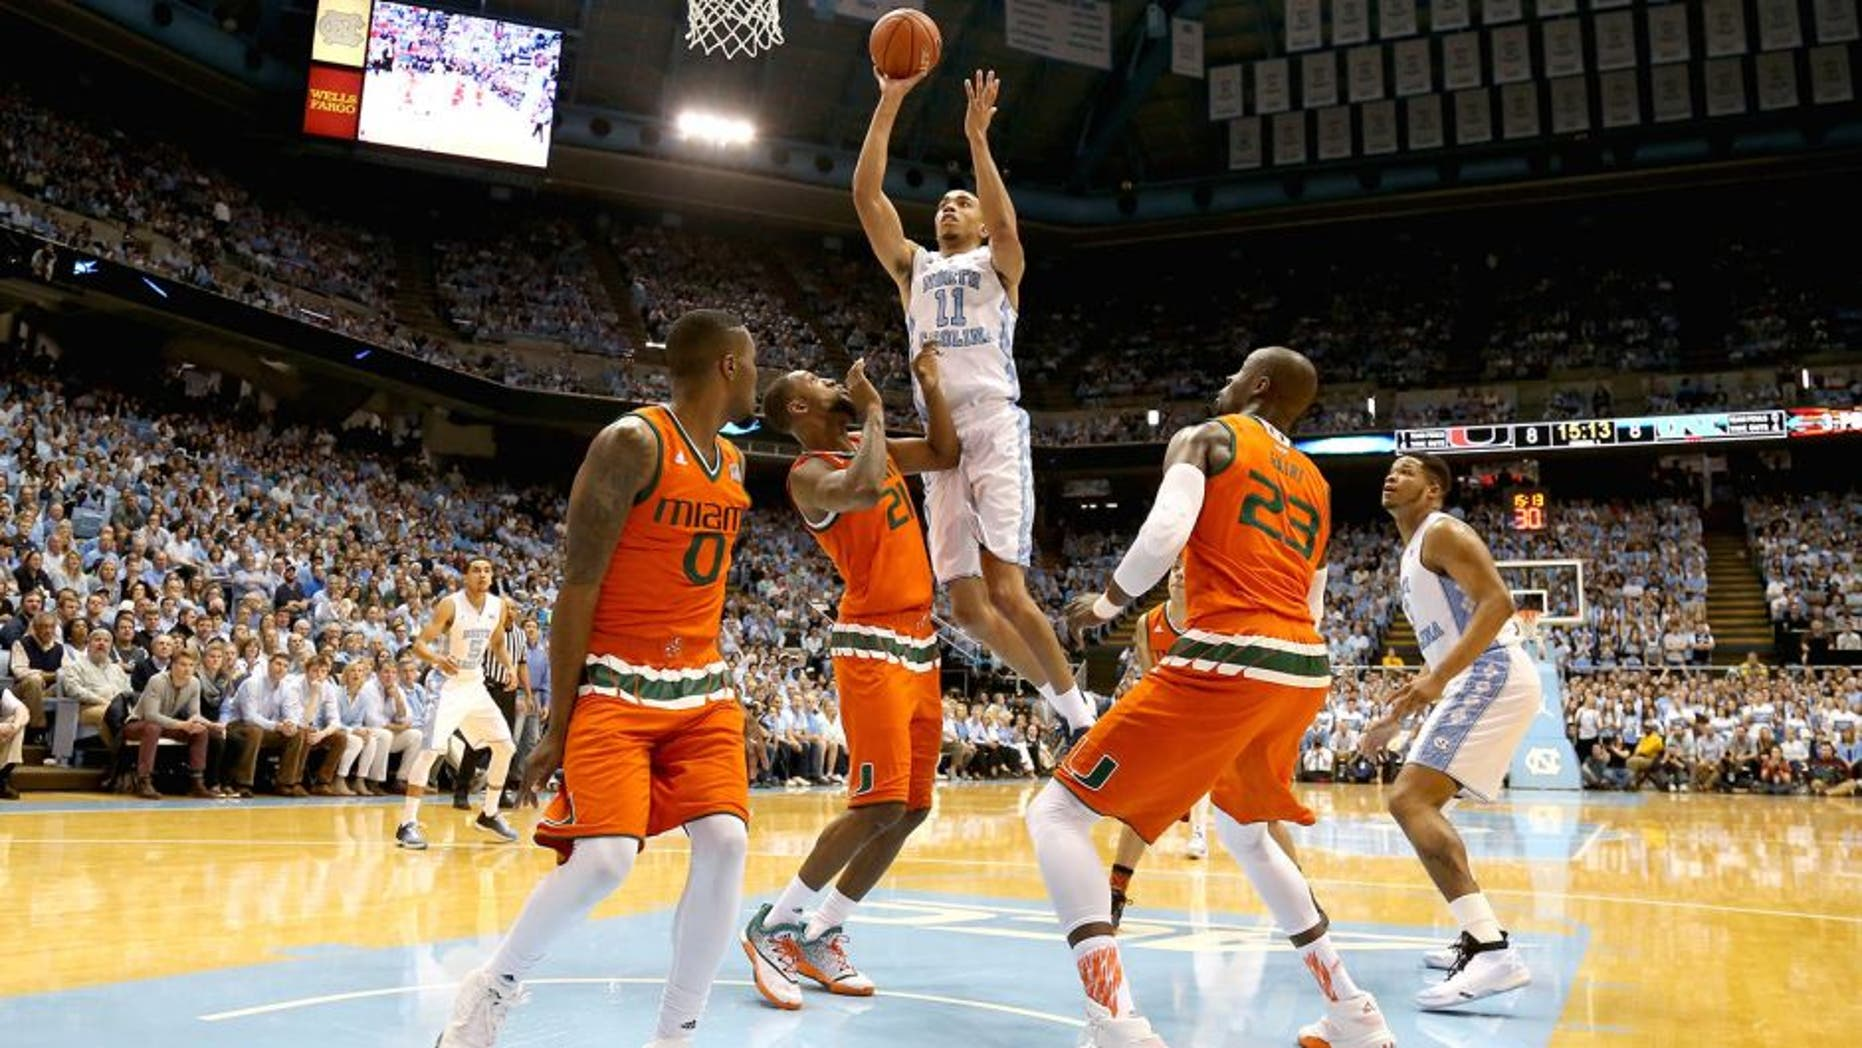 CHAPEL HILL, NC - FEBRUARY 20: Brice Johnson #11 of the North Carolina Tar Heels shoots over Kamari Murphy #21 of the Miami Hurricanes during their game at Dean Smith Center on February 20, 2016 in Chapel Hill, North Carolina. (Photo by Streeter Lecka/Getty Images)